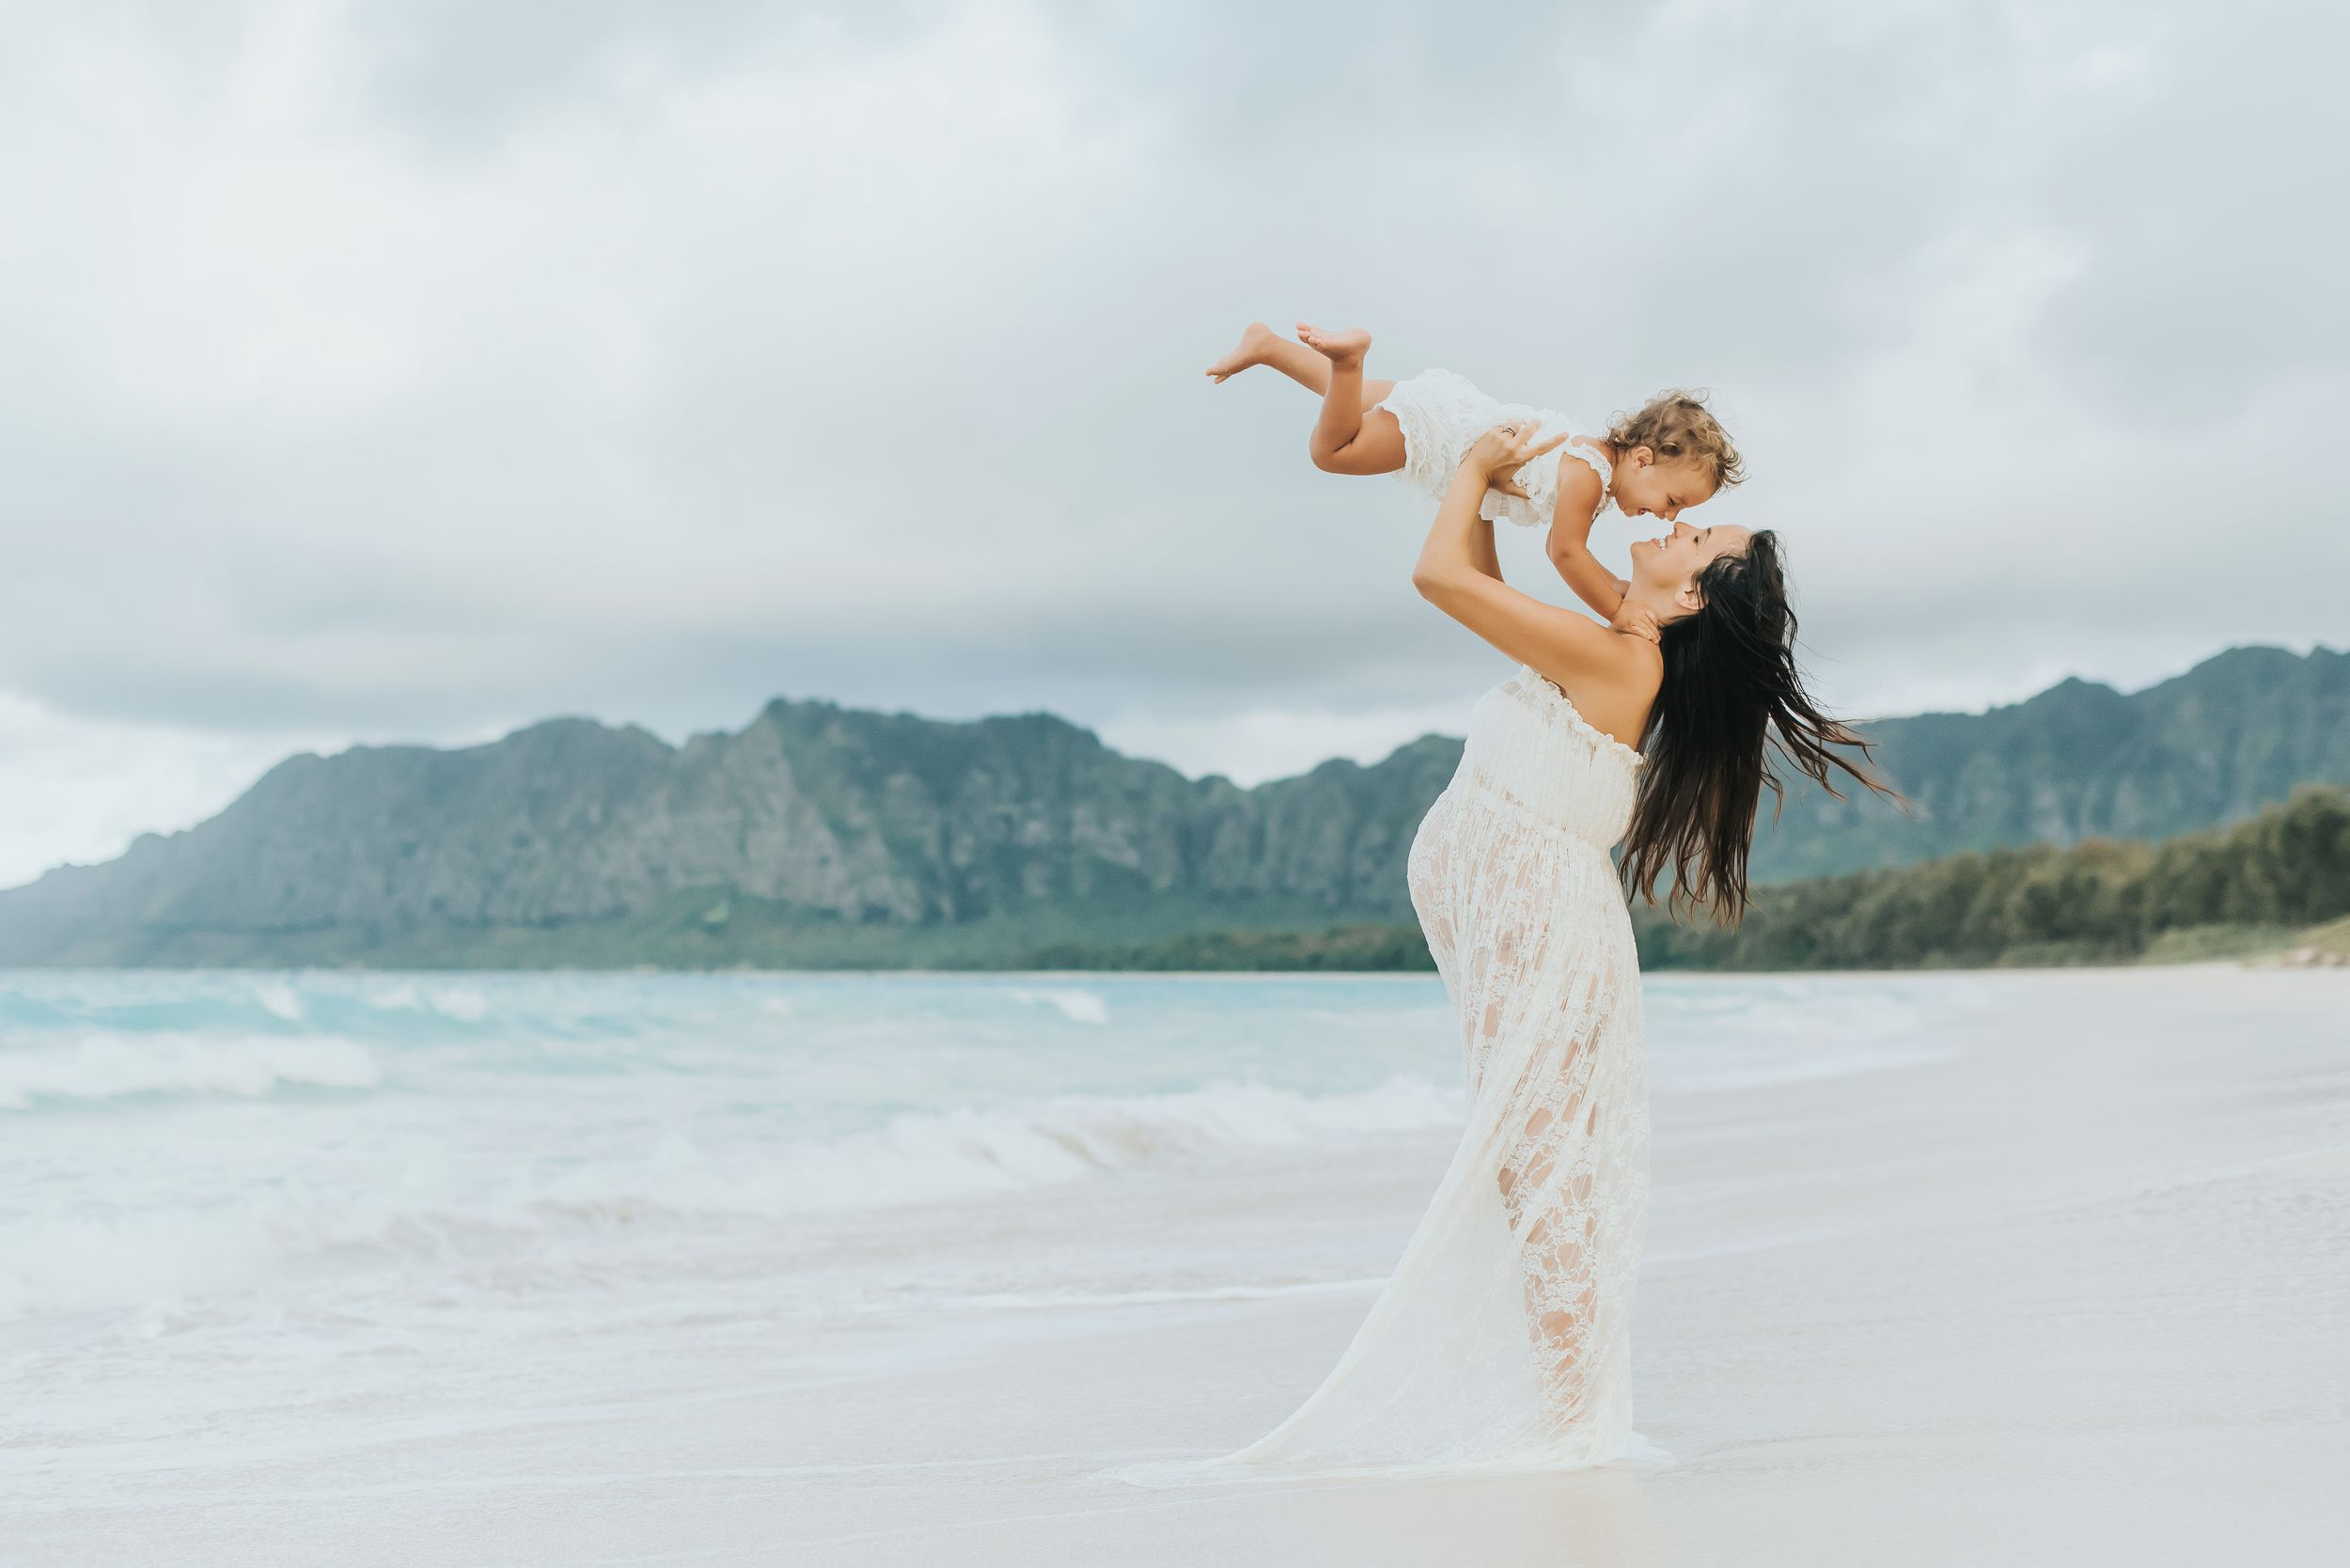 Oahu Hawaii Maternity Photographer - Honolulu Maternity Photographer - Hawaii Beach Maternity-5